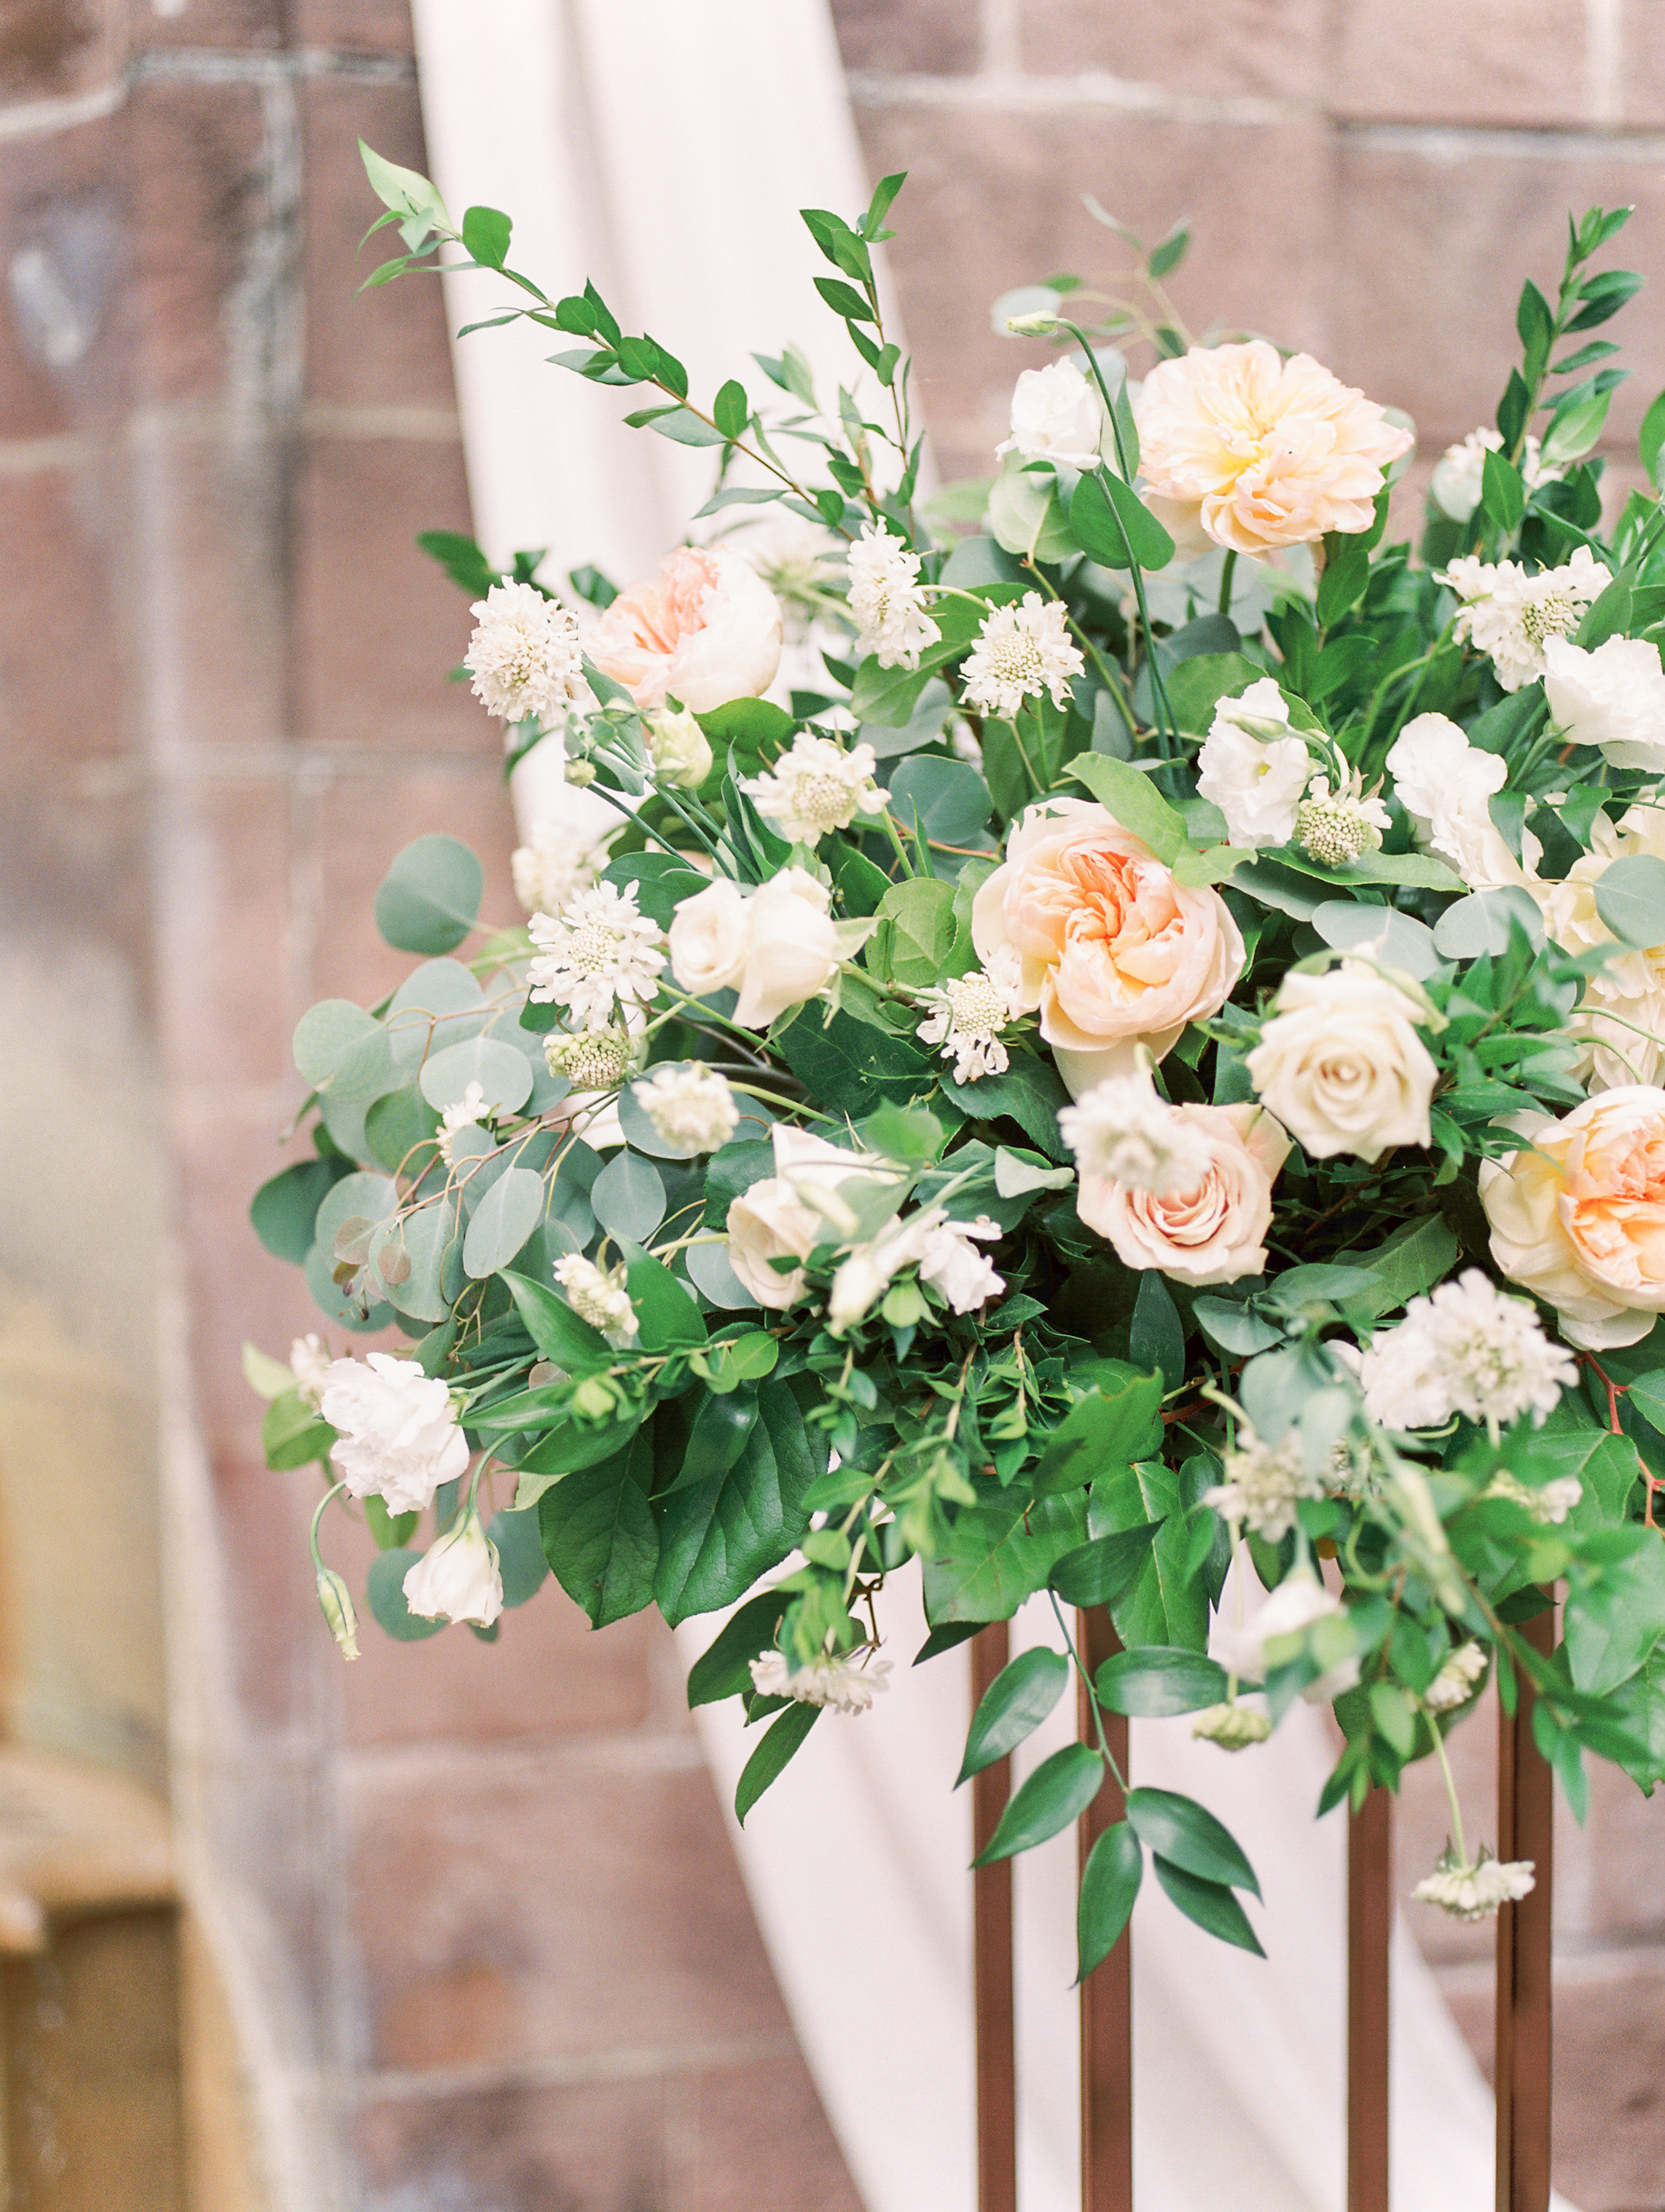 We loved the floral installations in whites and blushes from Maura Rose Events from this bright boho chic Tyler Gardens wedding in Bucks County